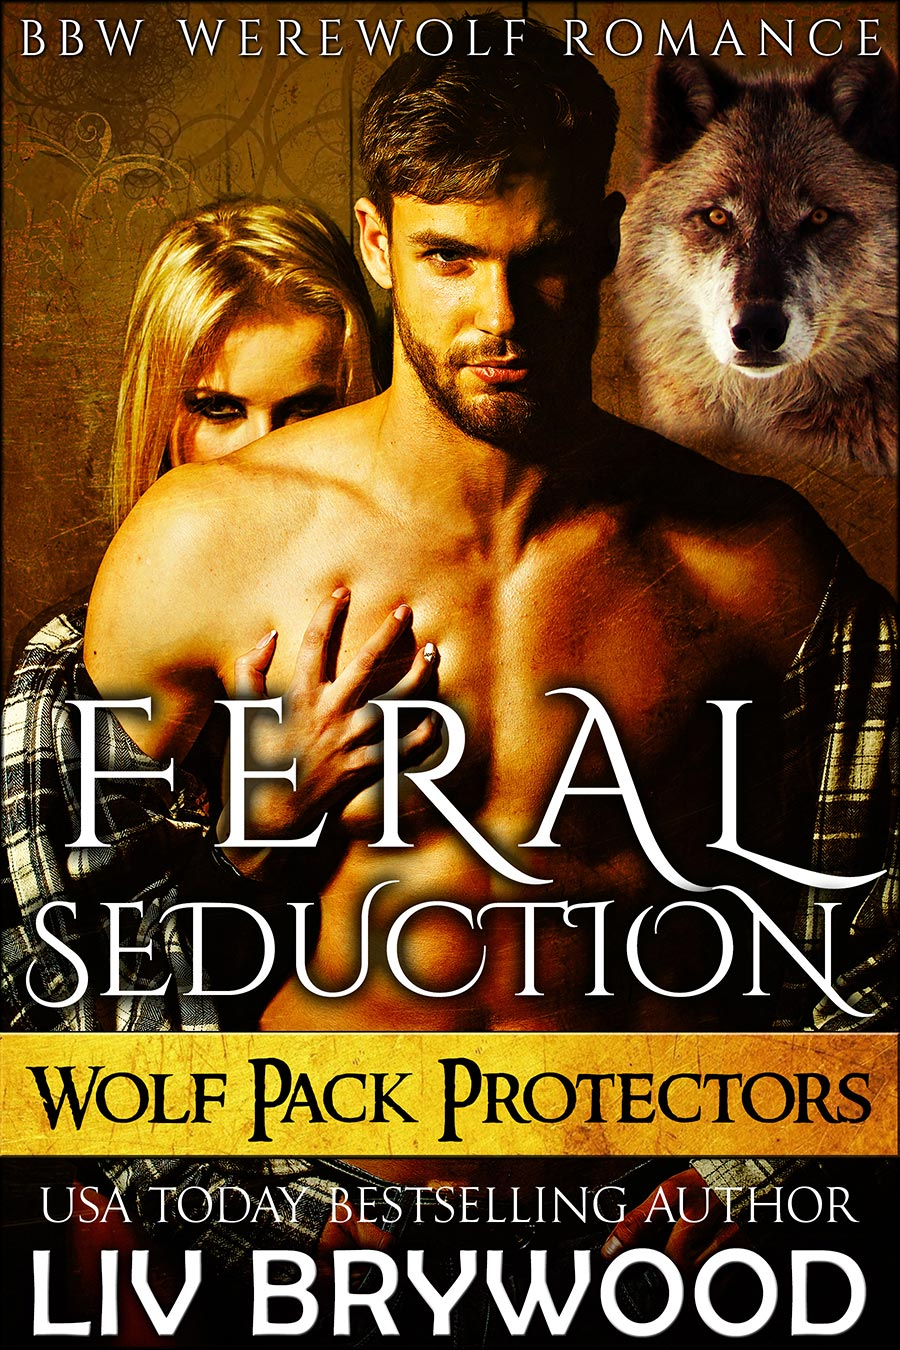 Feral-Seduction---Wolf-Pack-Protectors---book-1.jpg